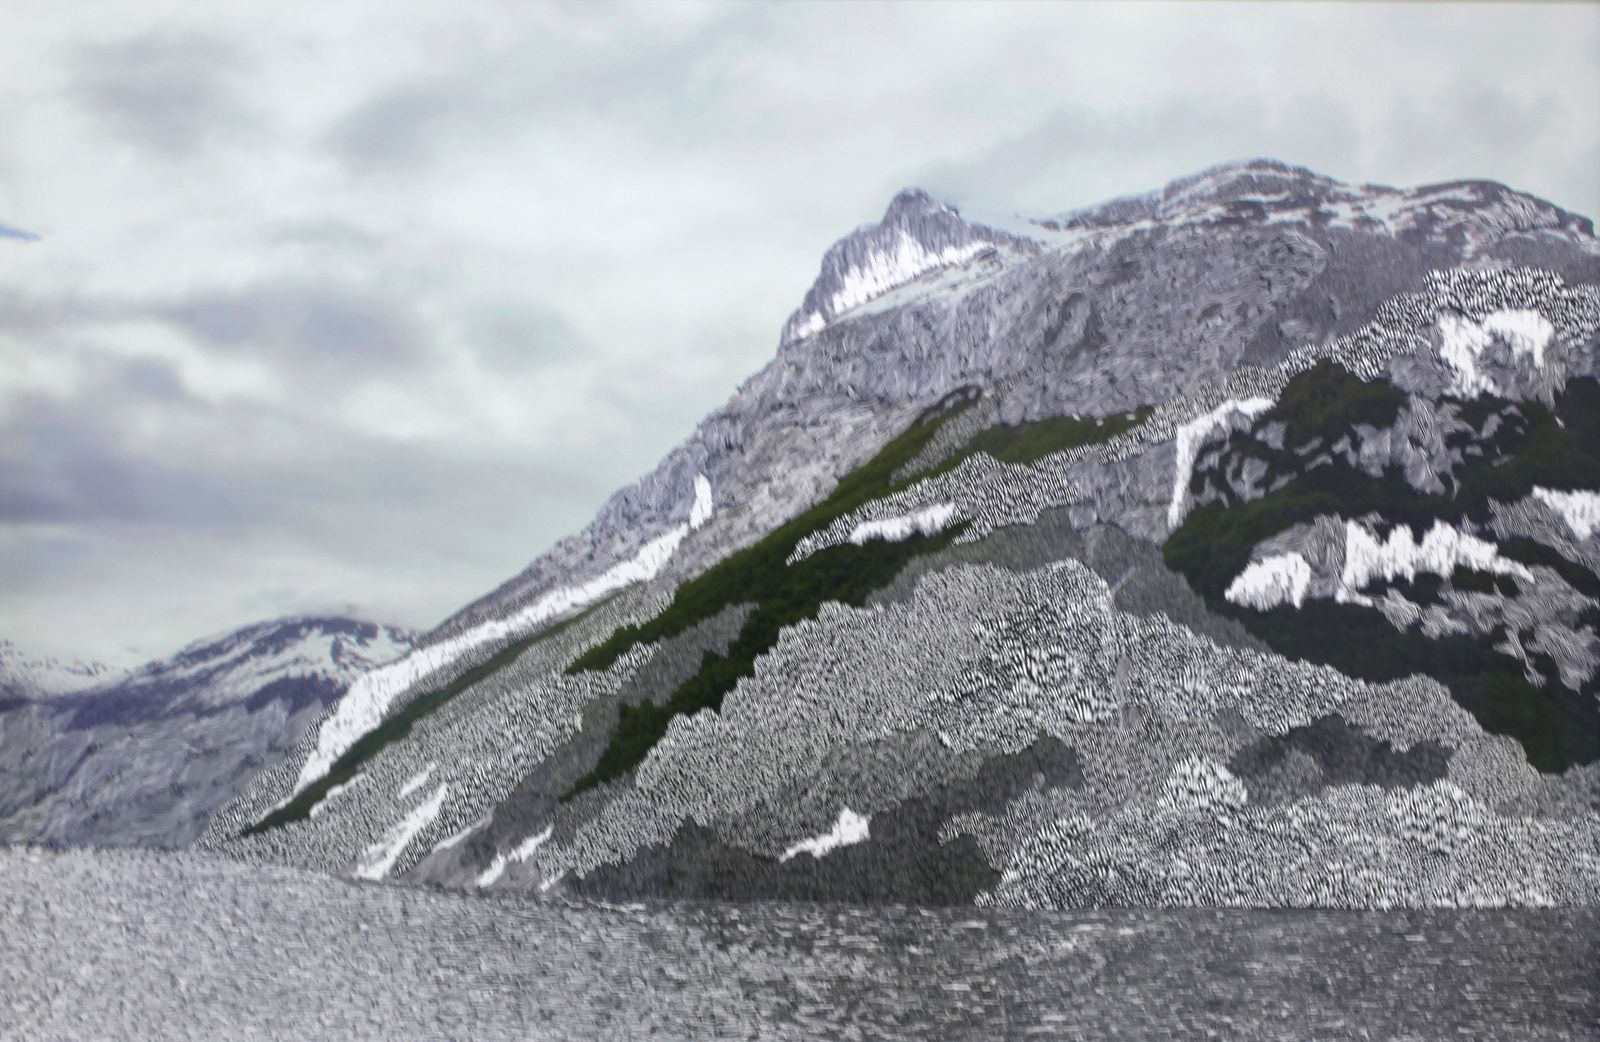 """Norvège"", 2016 de Raphaëlle PERIA - Courtesy Galerie Papillon  © Photo Éric Simon"